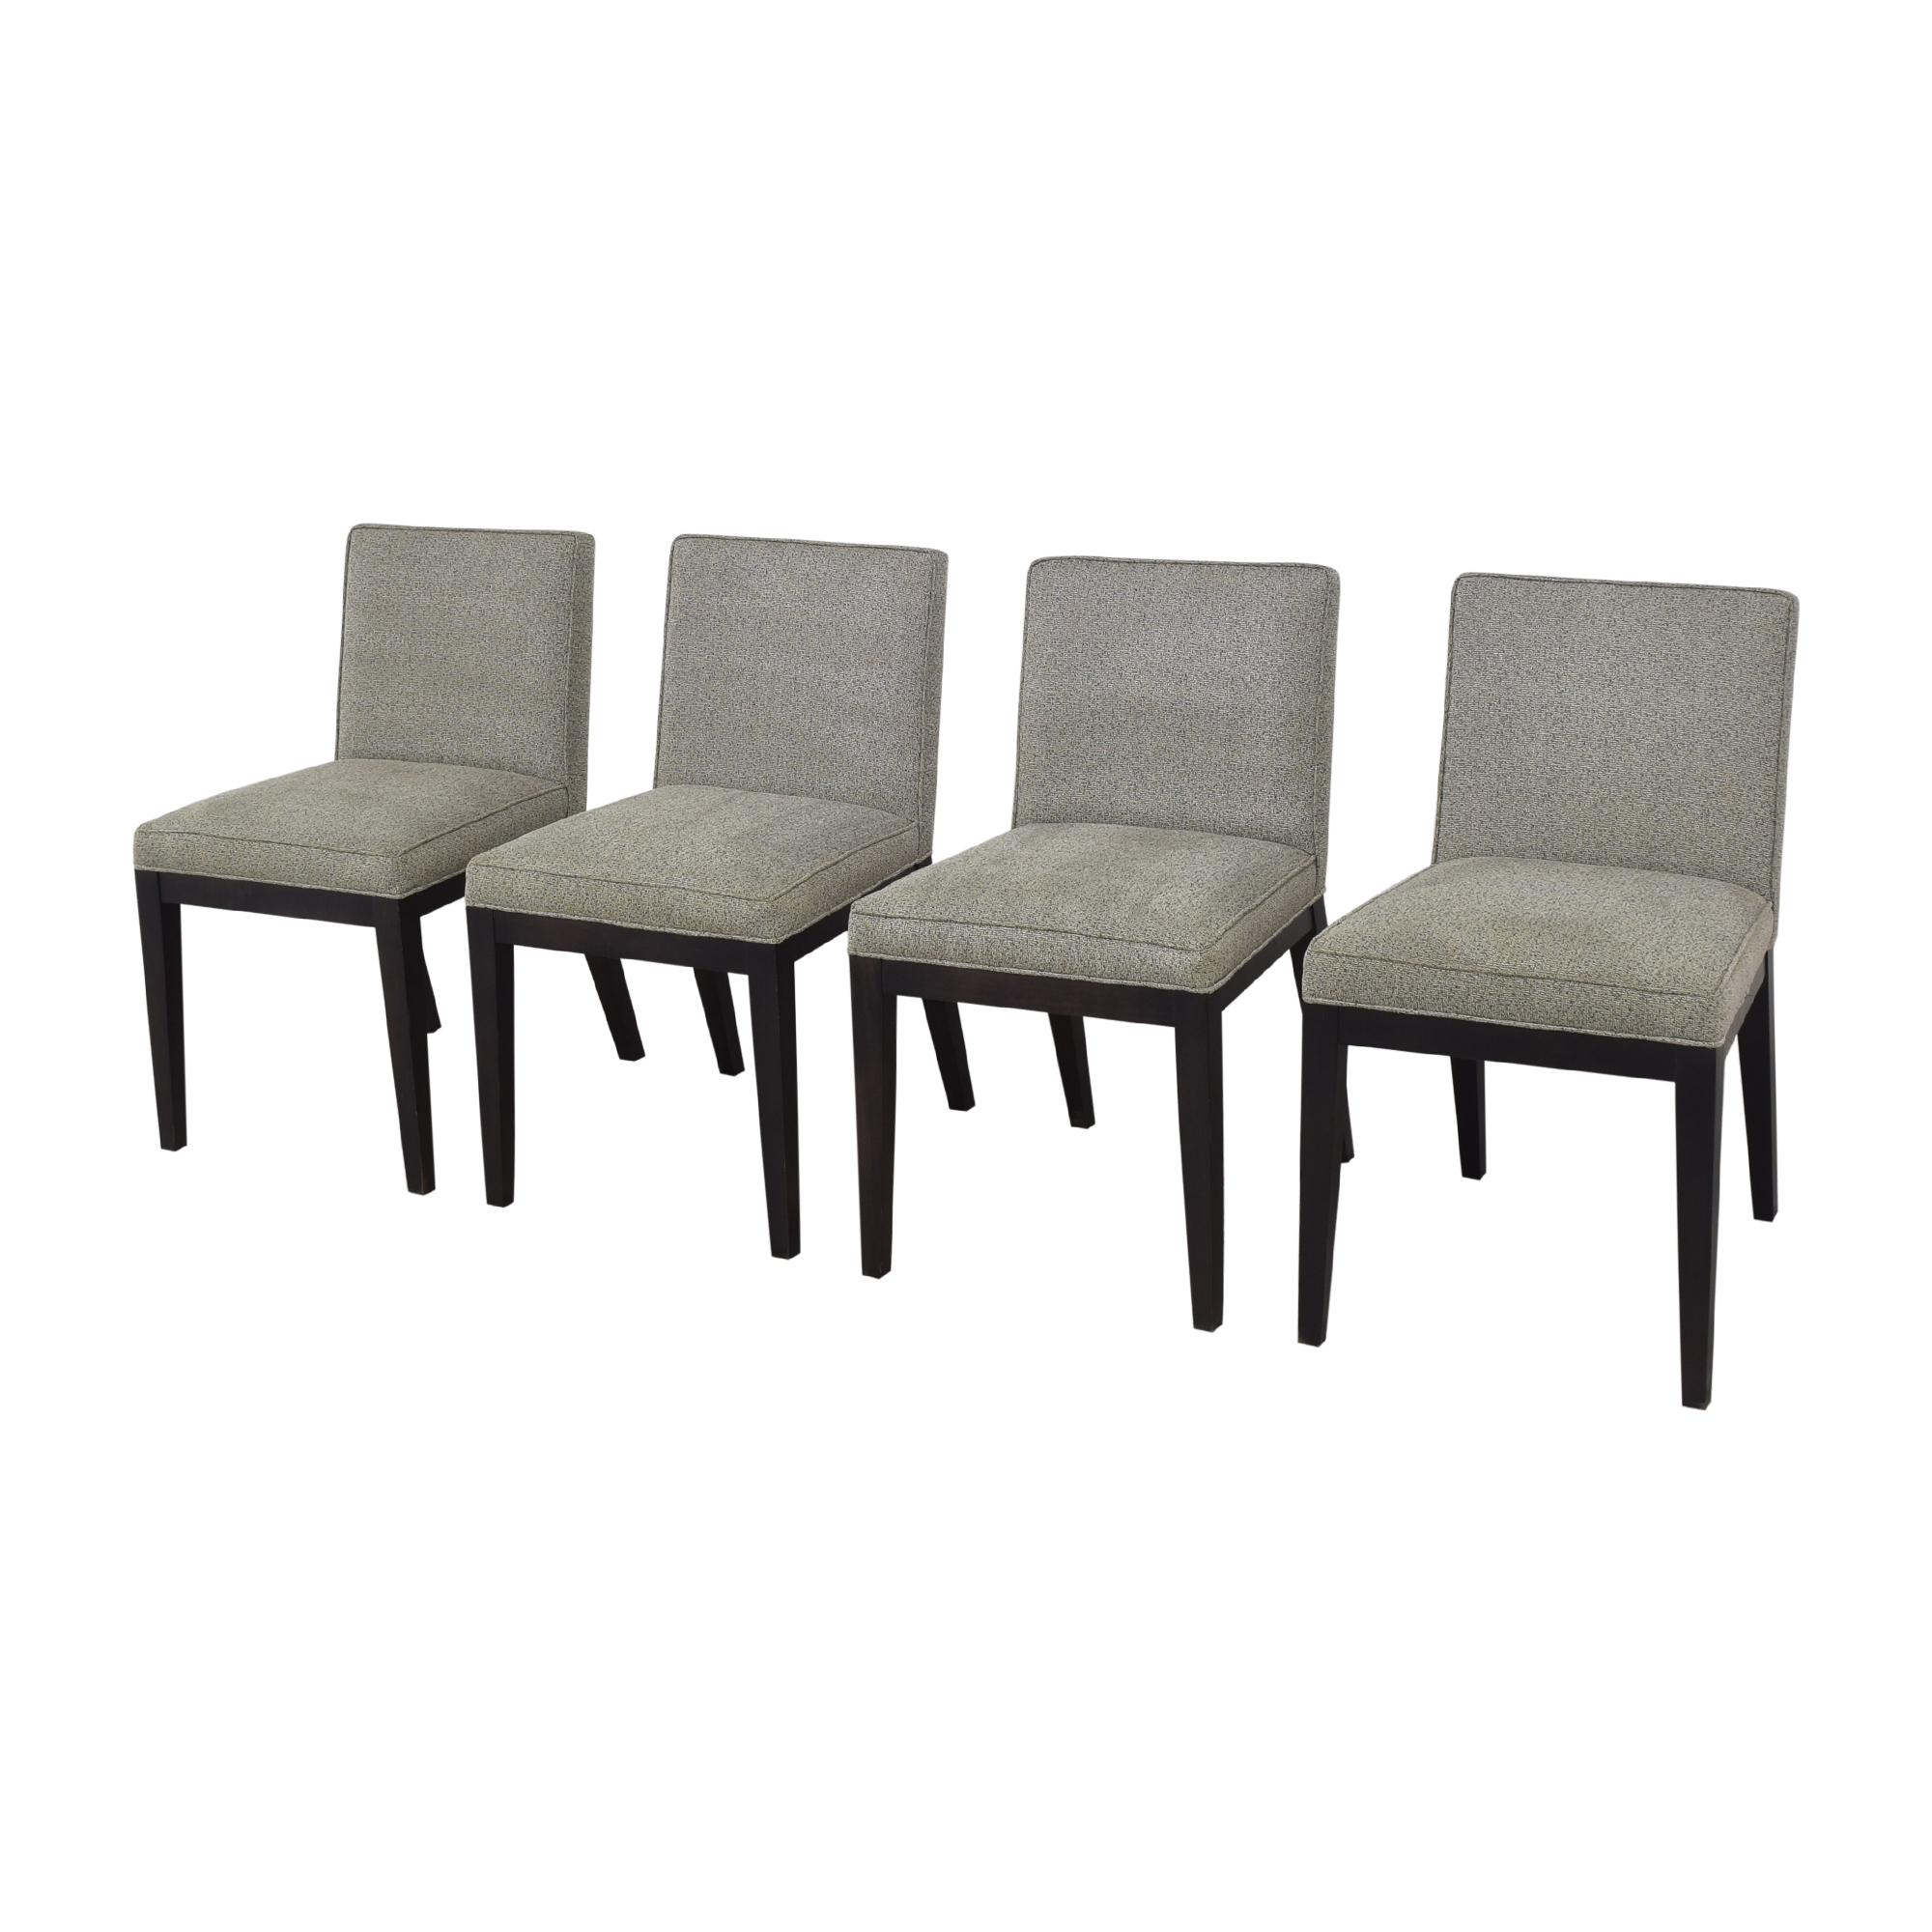 Room & Board Room & Board Ansel Dining Side Chairs Chairs